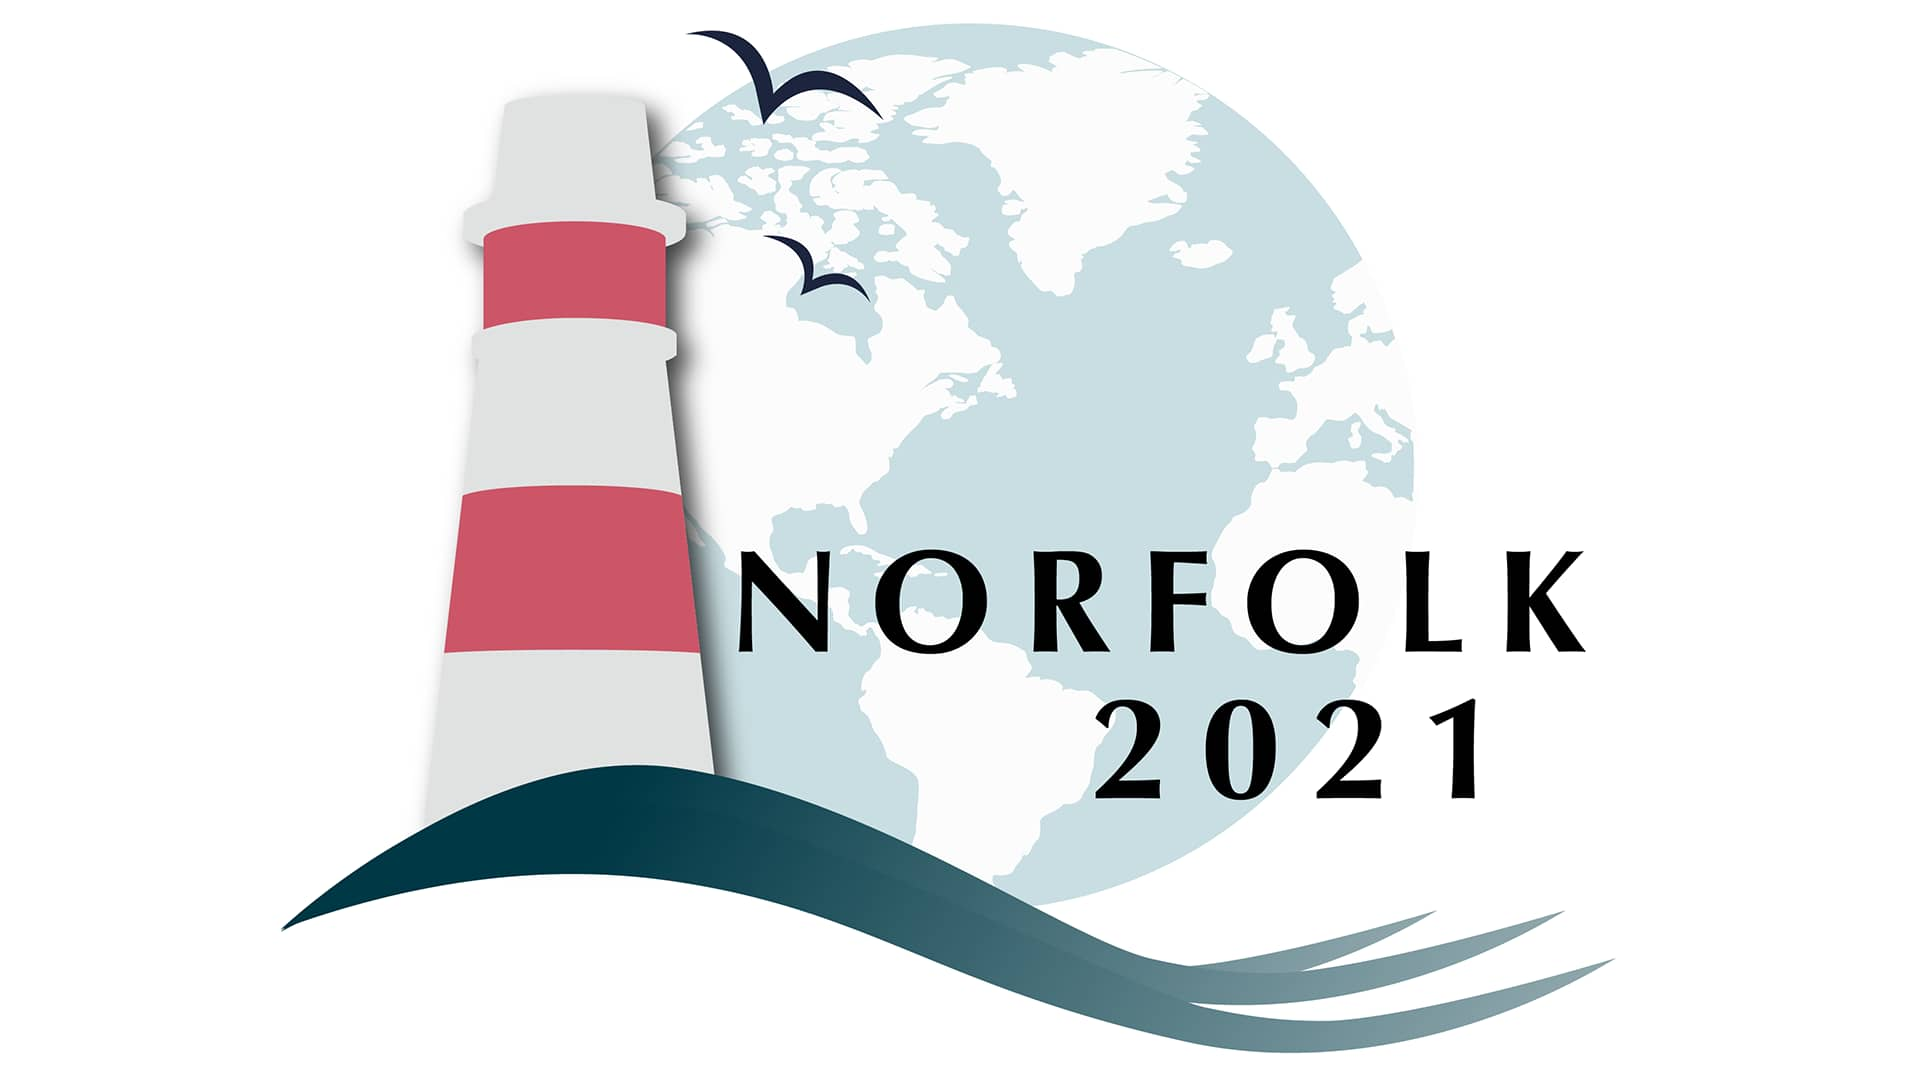 Society for Applied Anthropology 2021 Norfolk